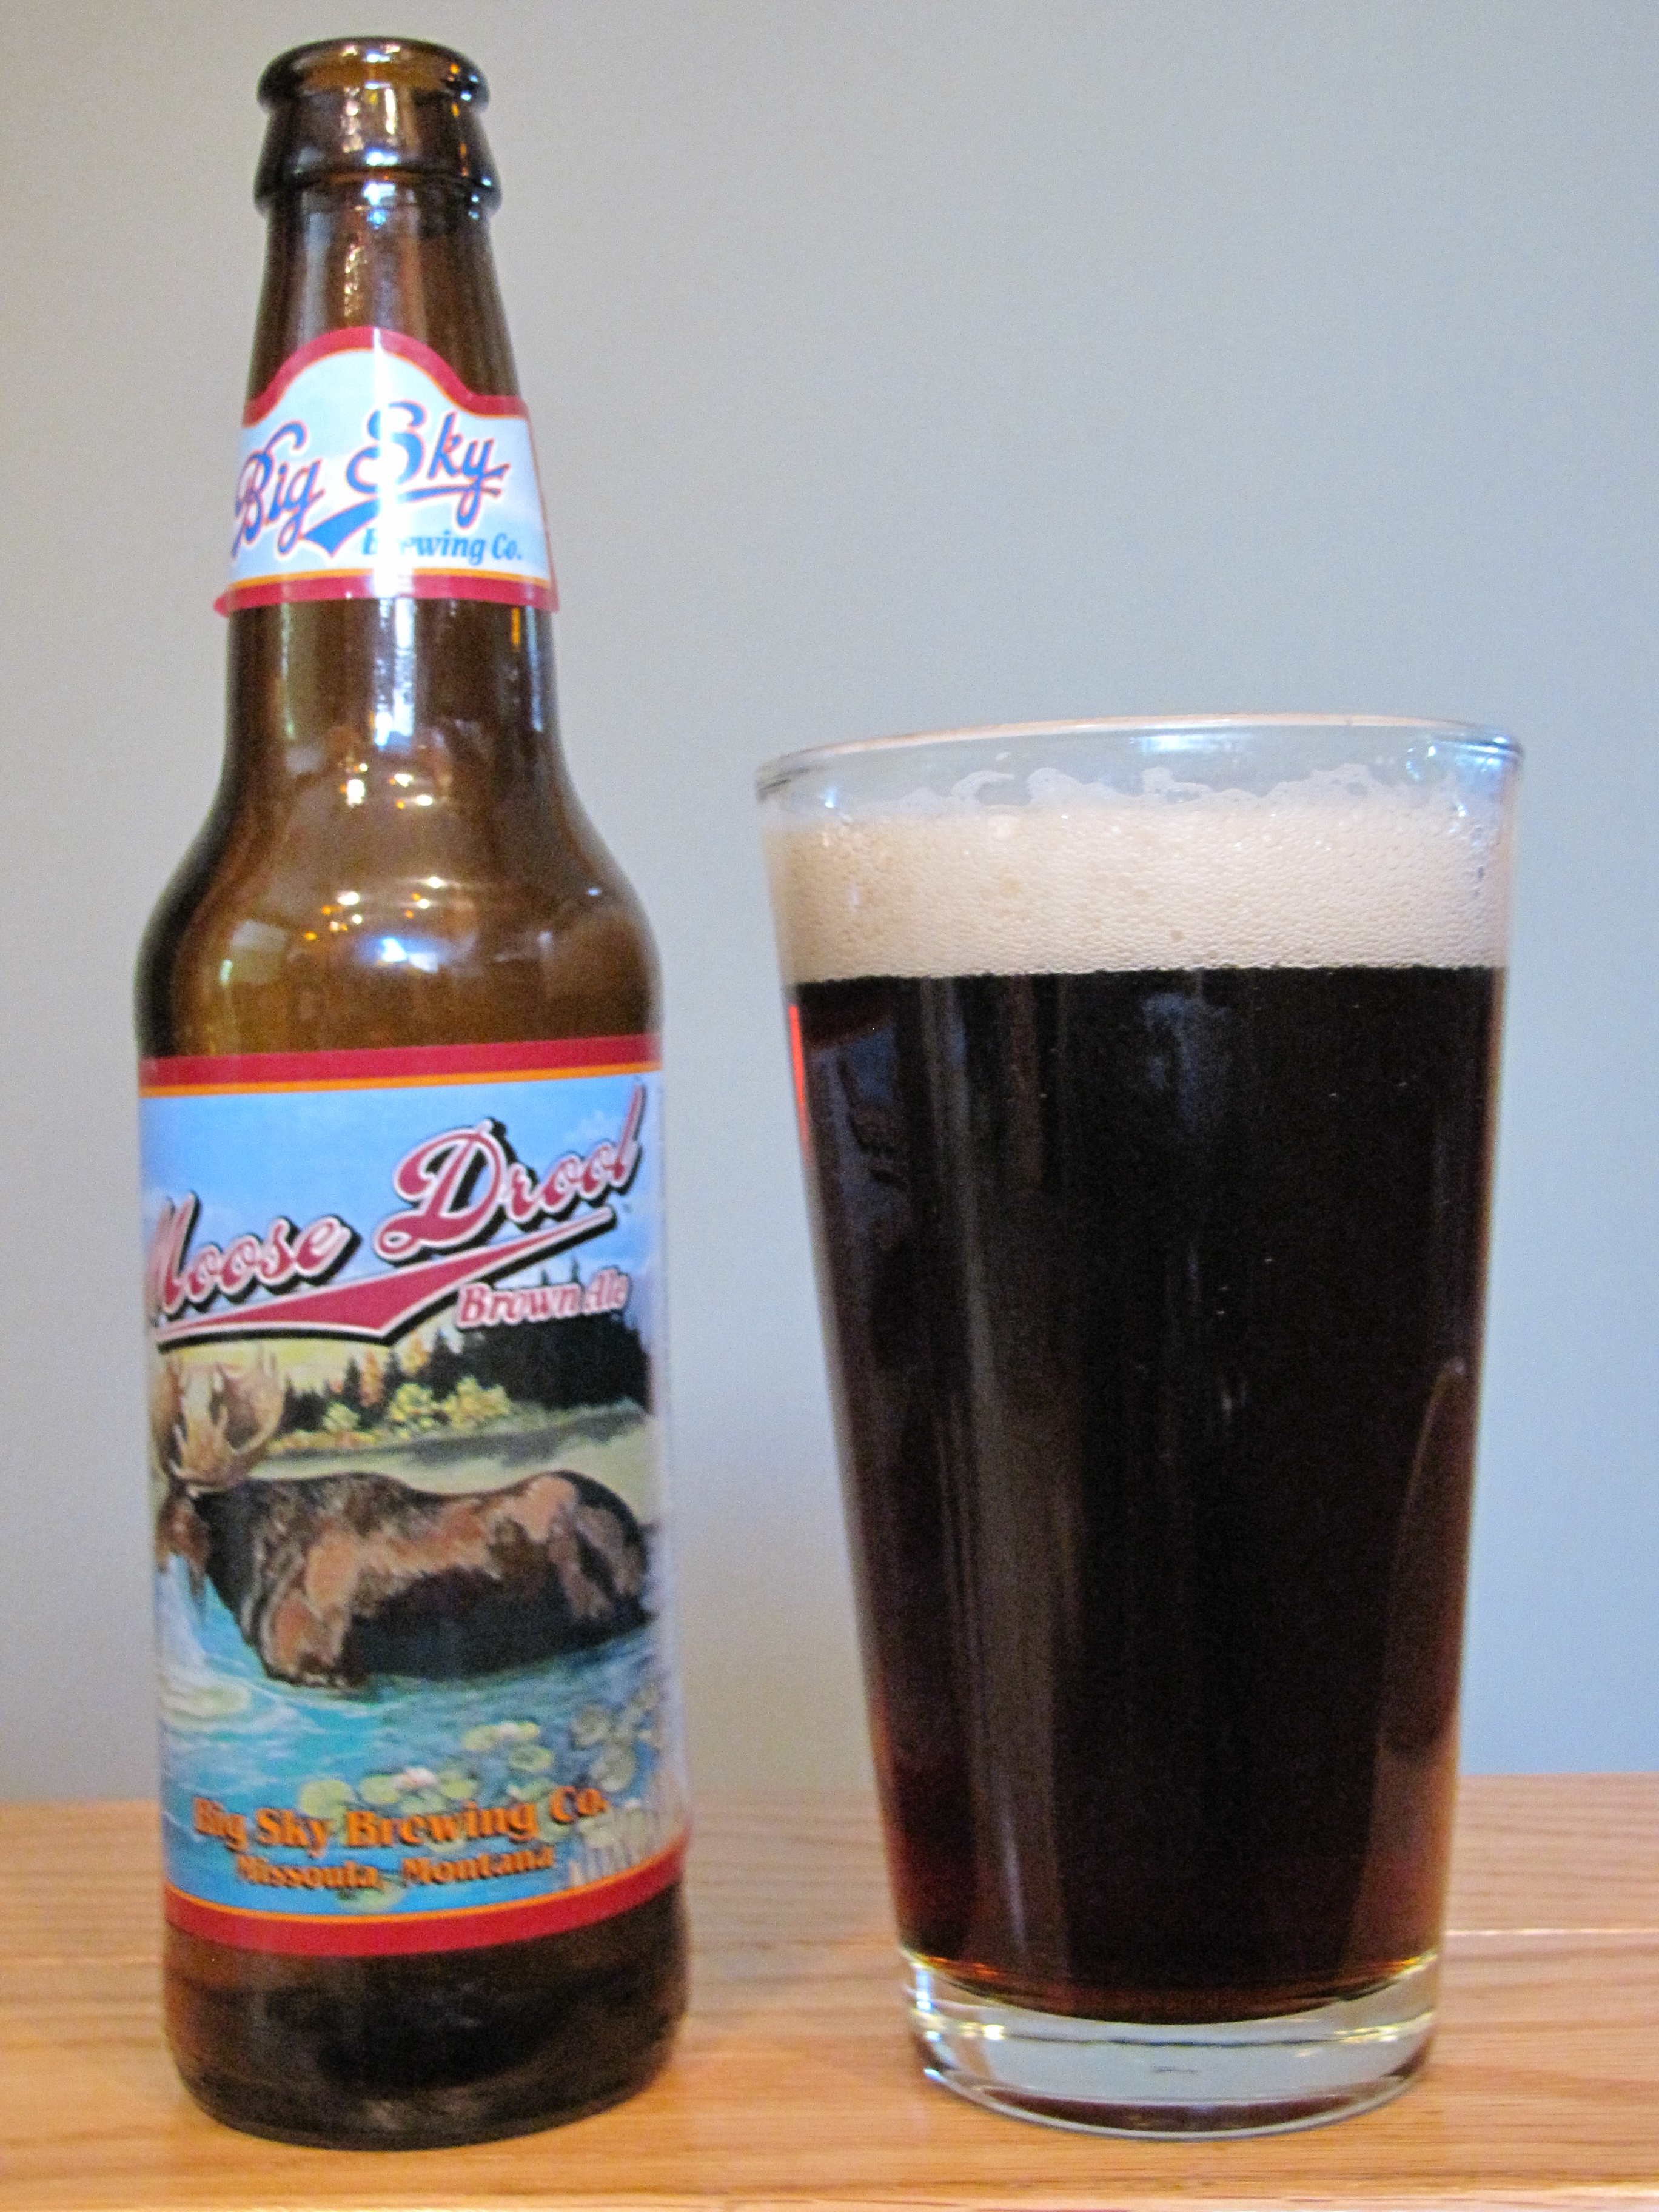 Big Sky Moos Drool Brown Ale